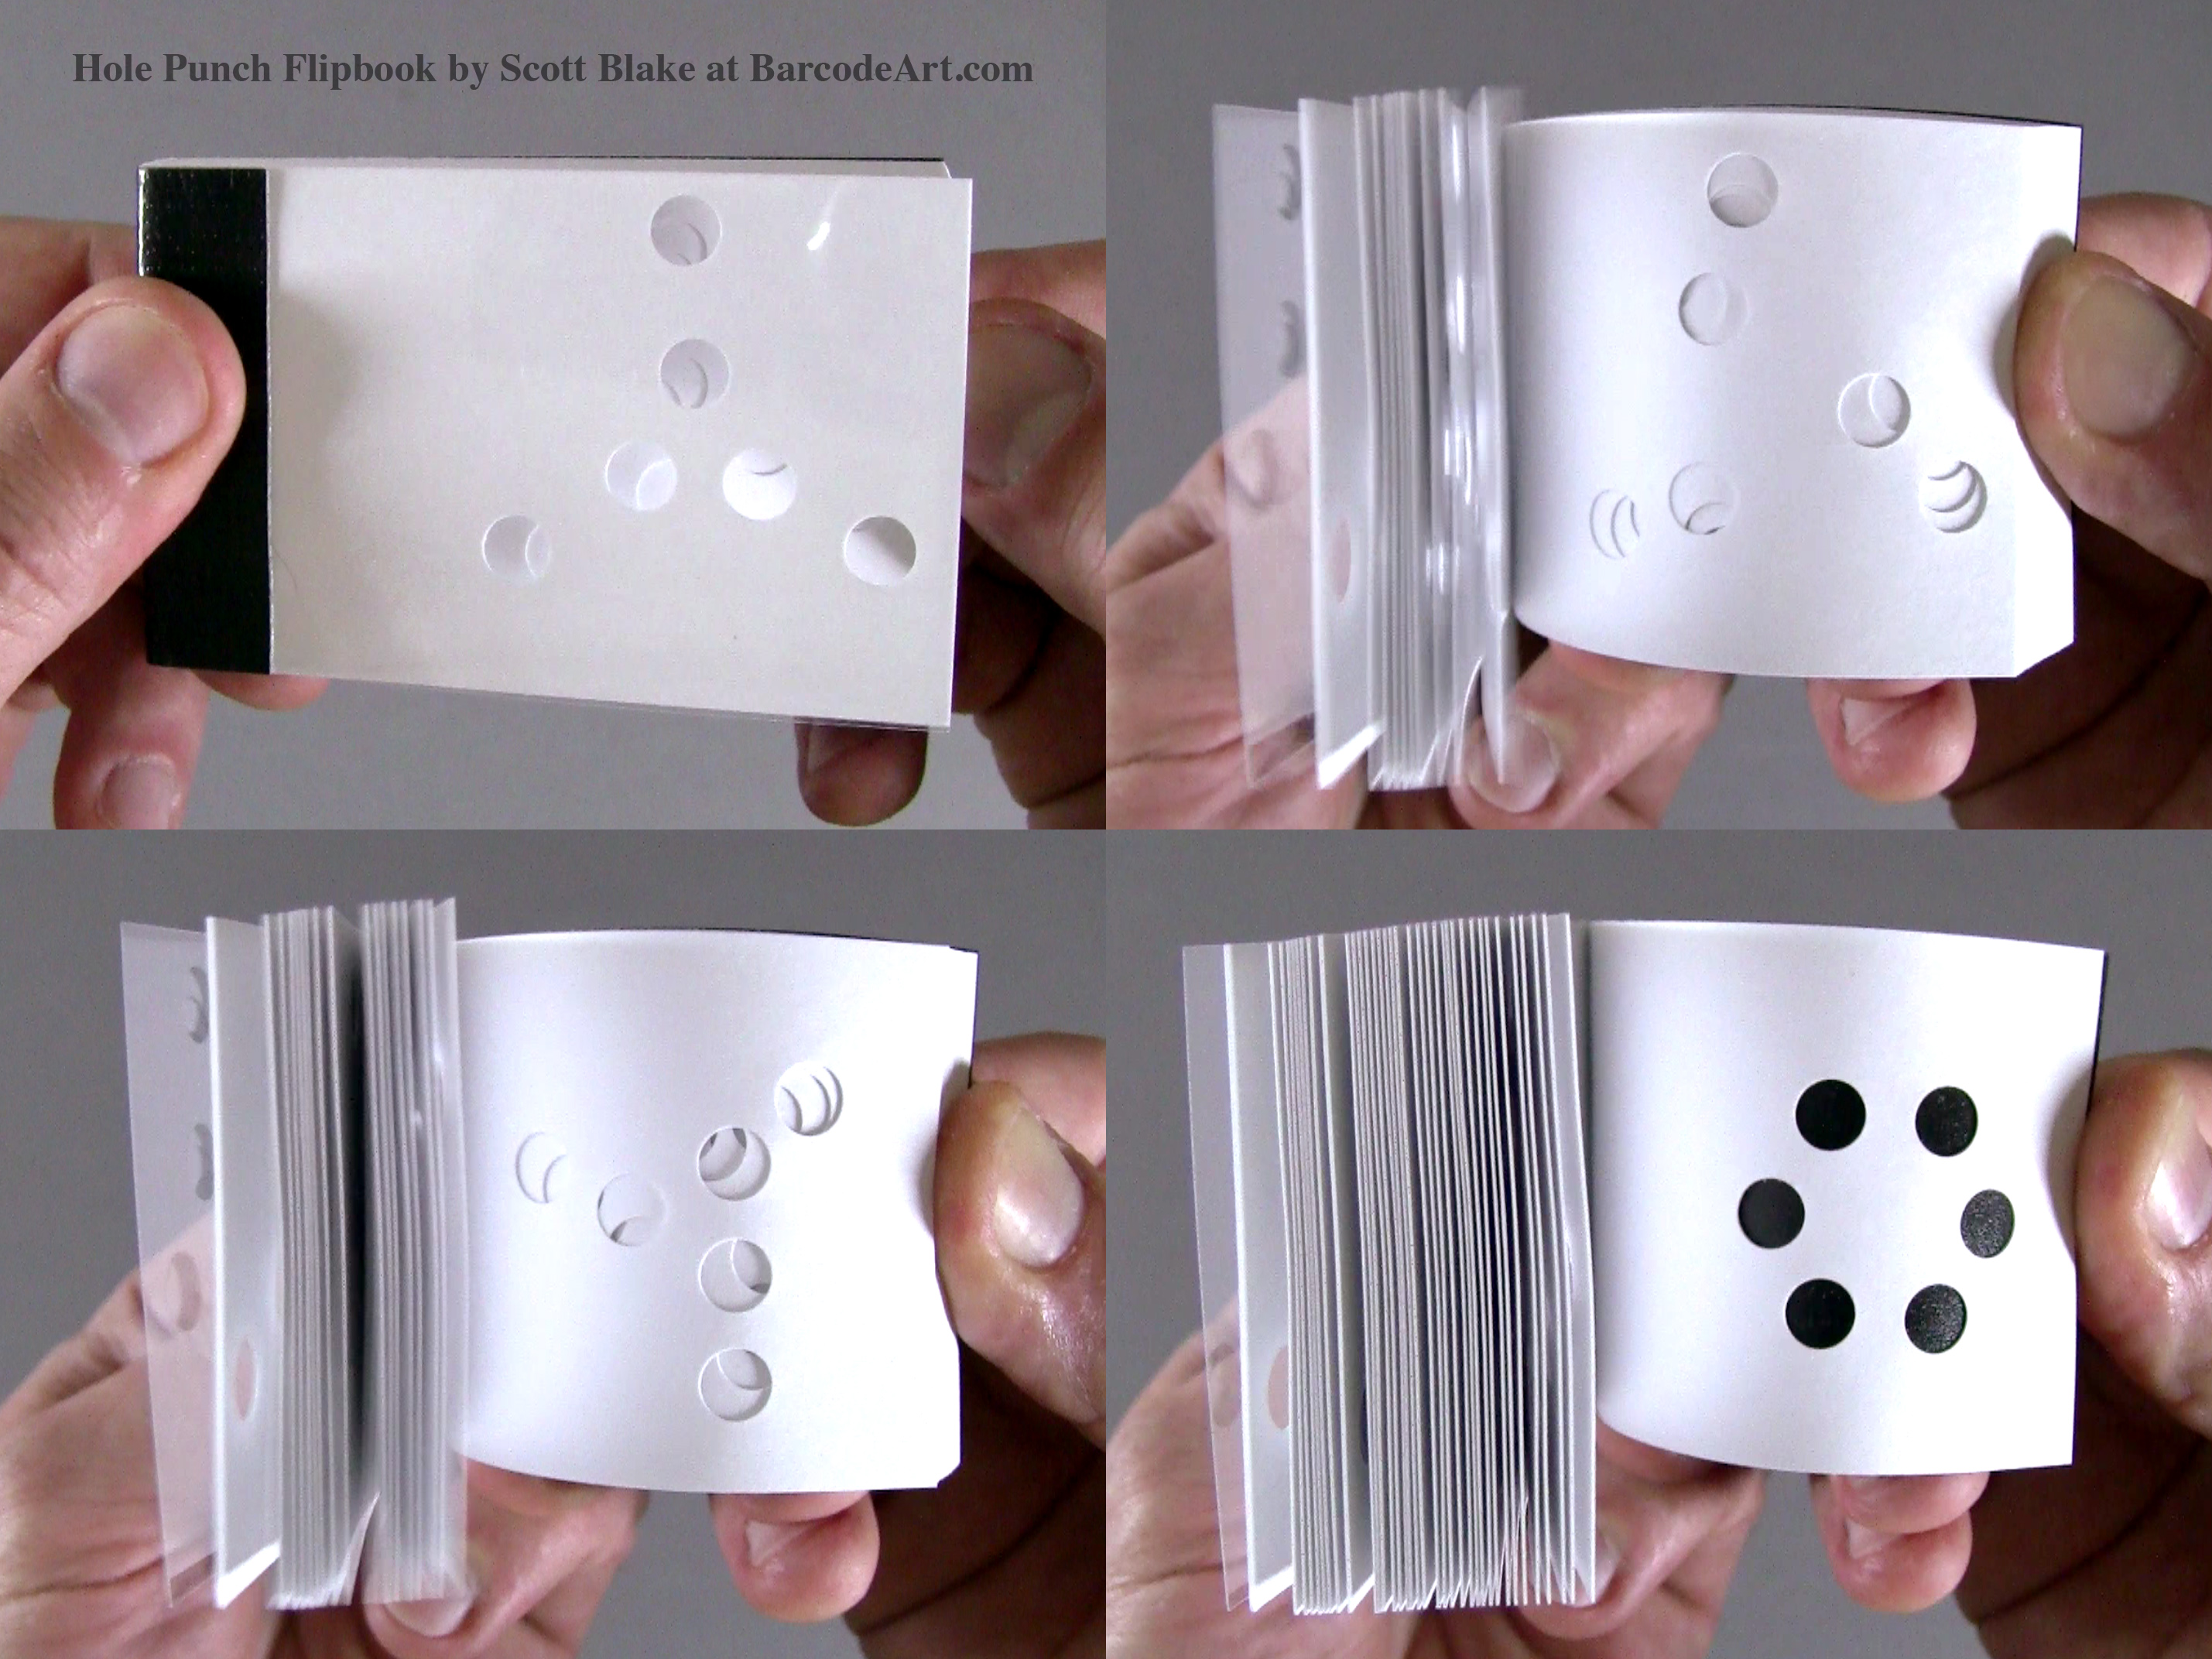 Exceptionnel Hole Punch Flipbooks by Scott Blake JF53